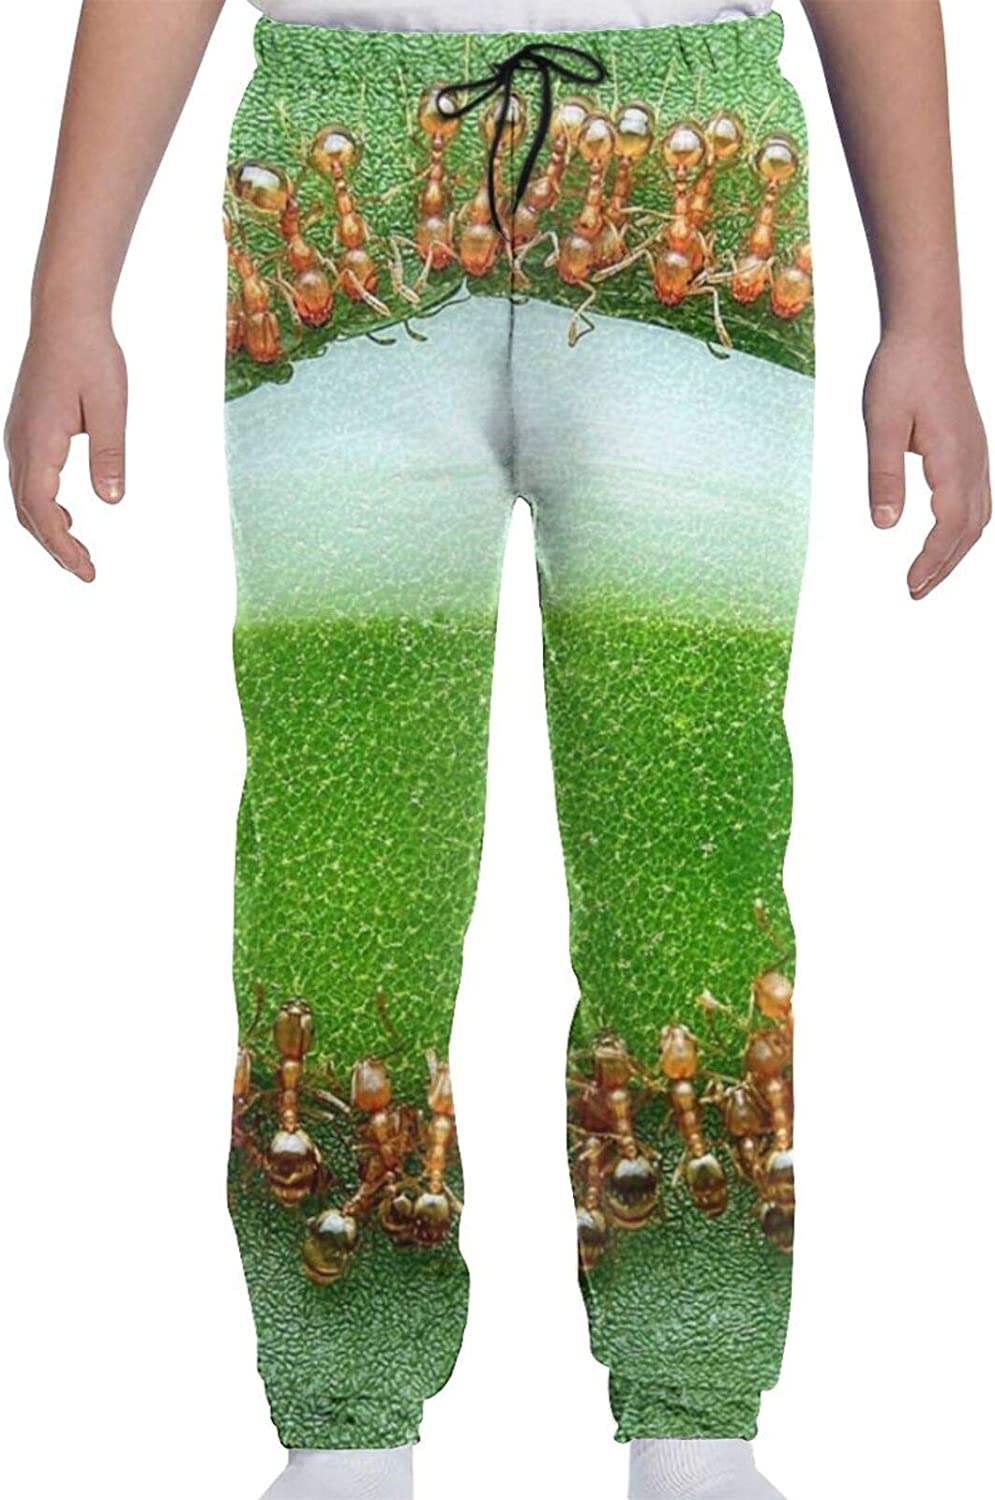 Oomato Ant Youth Sweatpants 3D Boys Teens Max 86% OFF Print Girls Max 82% OFF Trousers